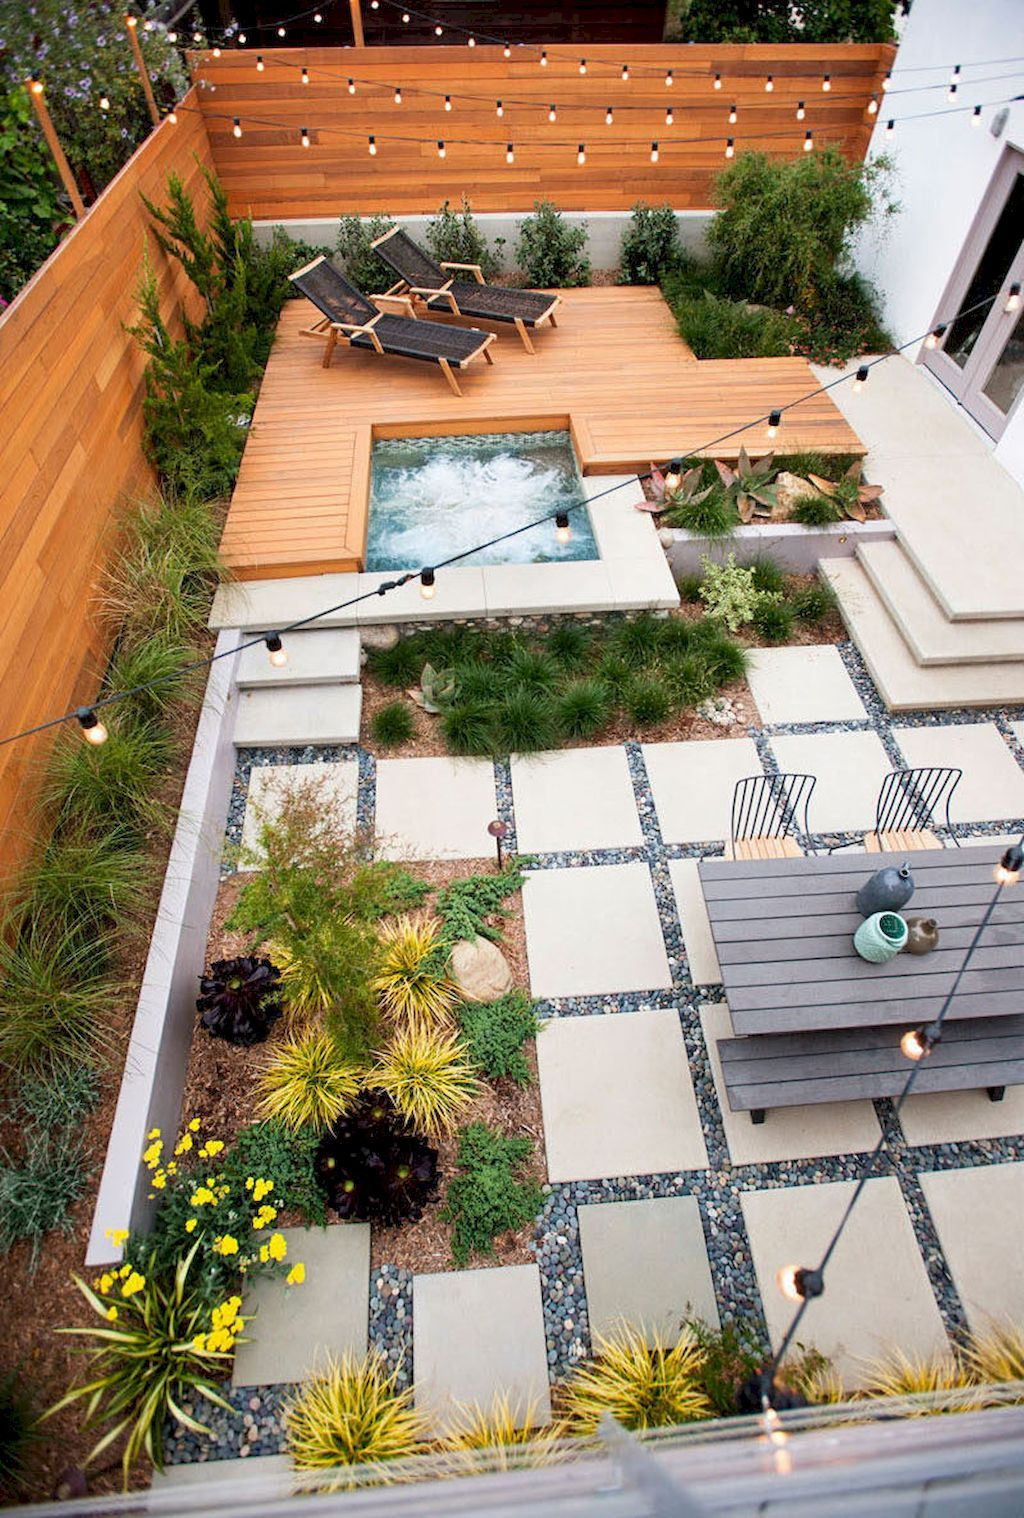 Exceptionnel Awesome 80 Small Backyard Landscaping Ideas On A Budget  Https://homevialand.com/2017/06/21/80 Small Backyard Landscaping Ideas  Budget/